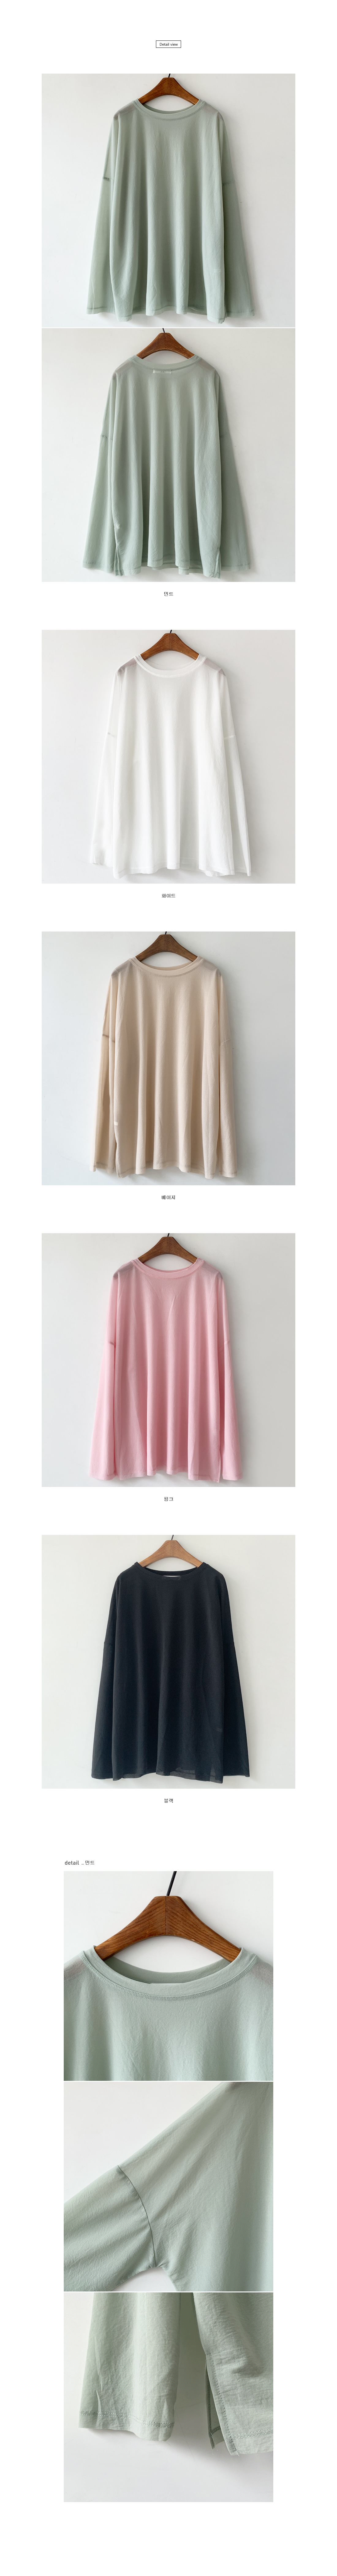 Now See-Through Long-sleeved T-shirt-Pink Same Day